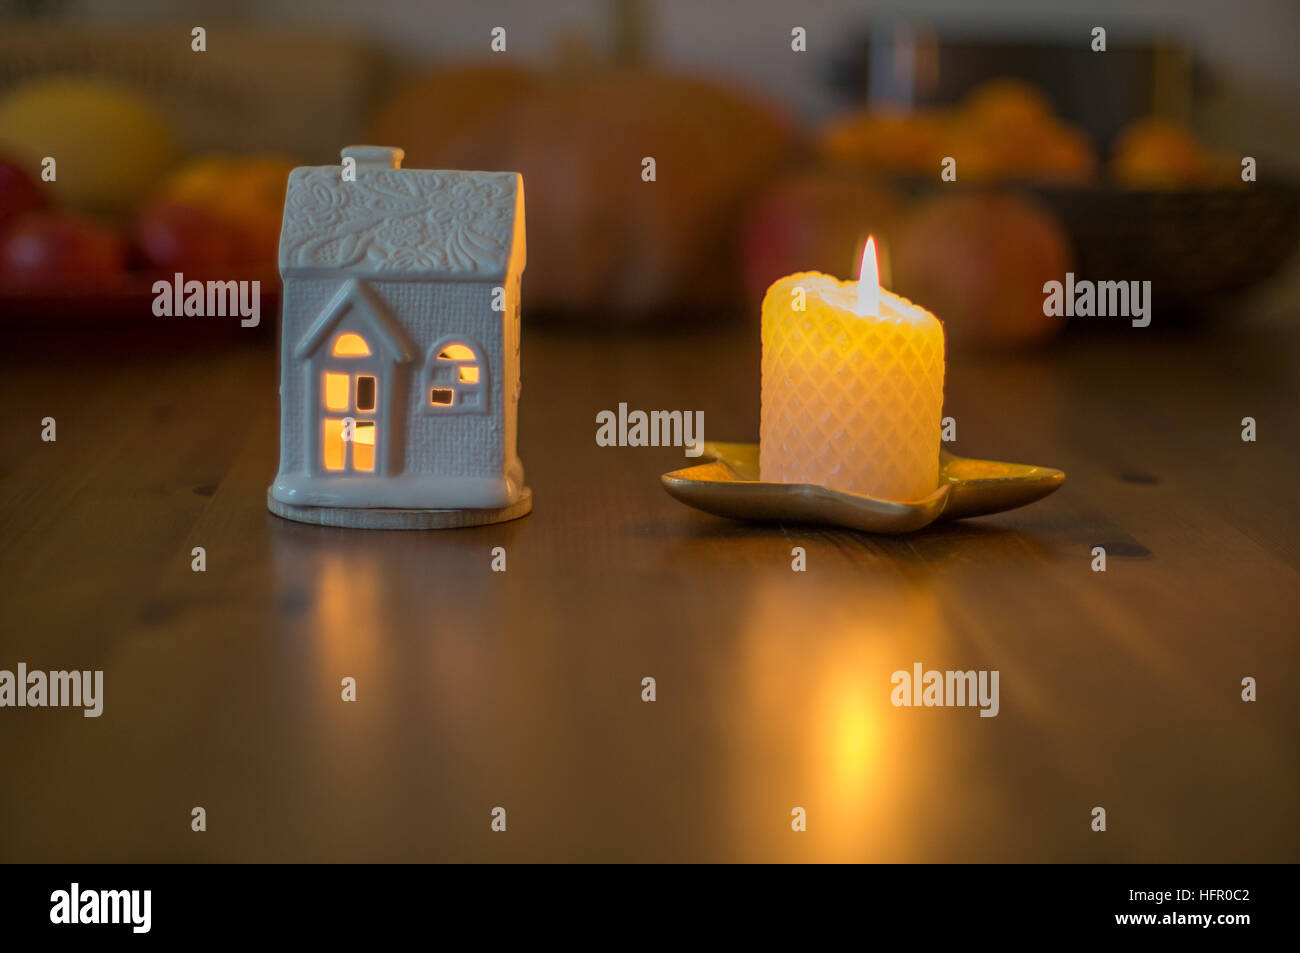 Home sweet home cosy homelike homely hygge - Stock Image